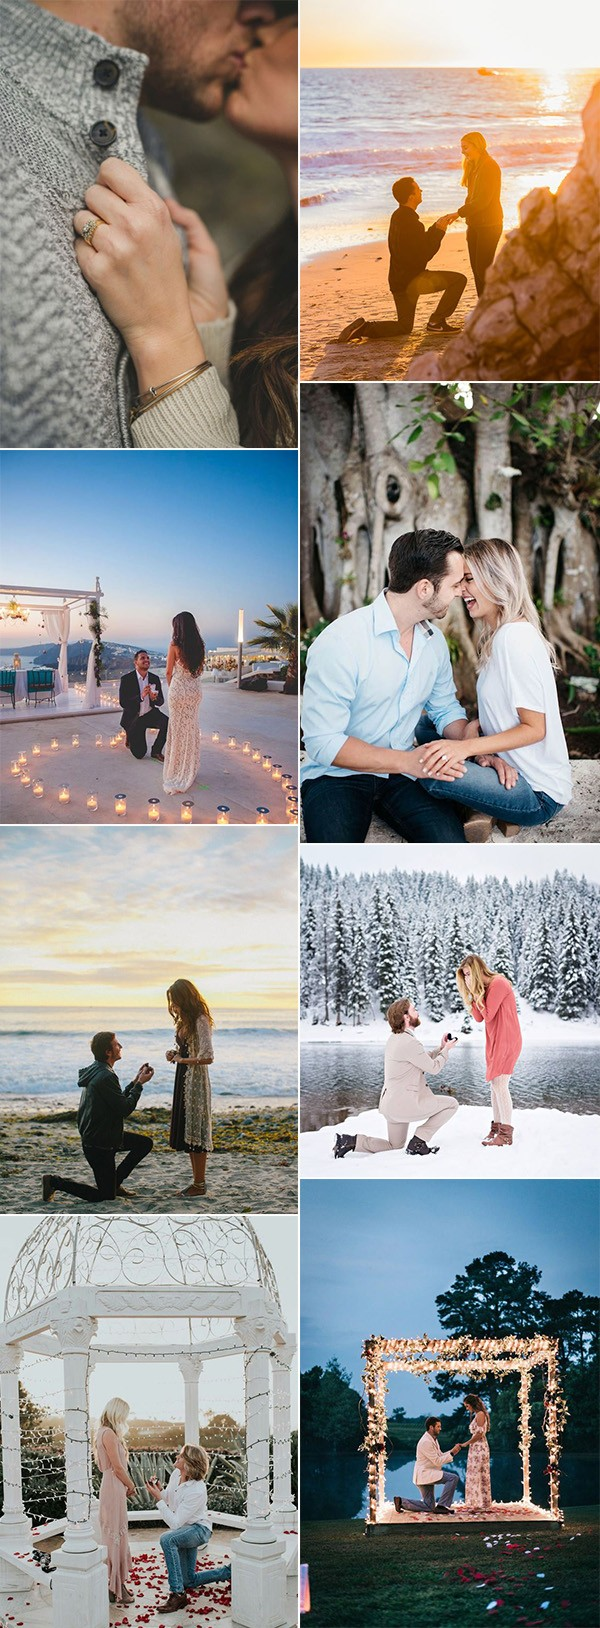 trending wedding proposal picture ideas to steal